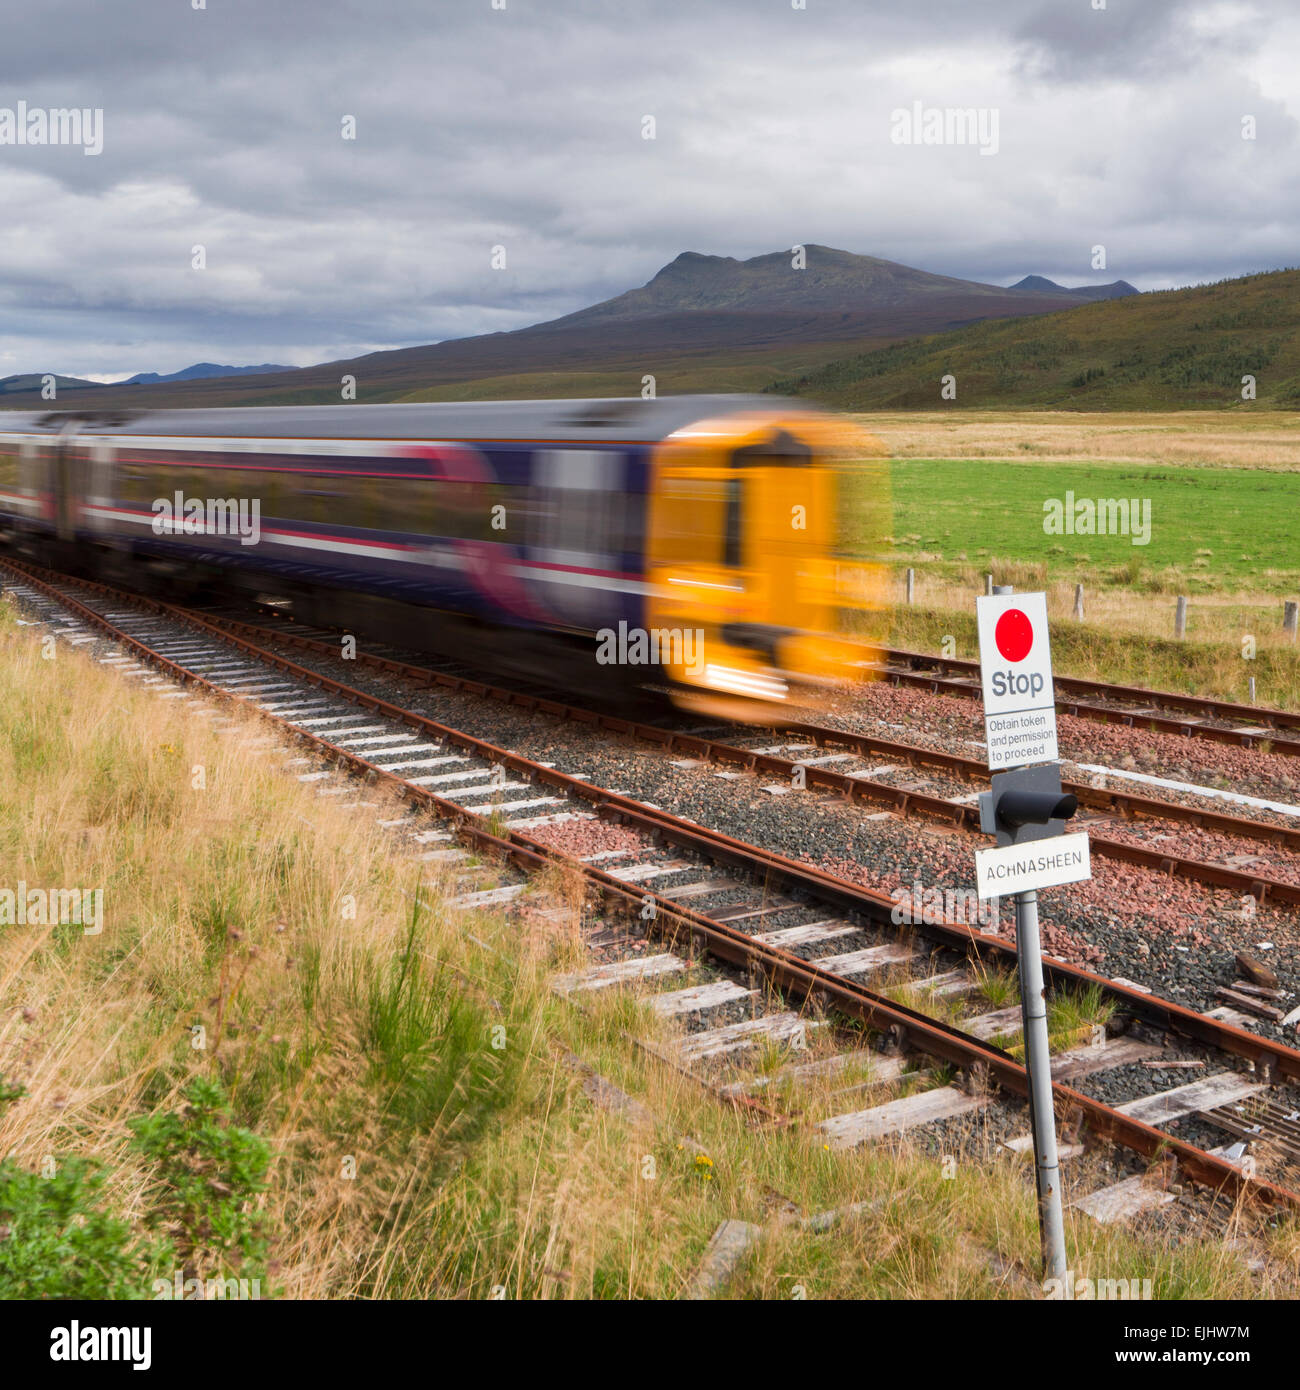 Scotrail train in highlands - Stock Image